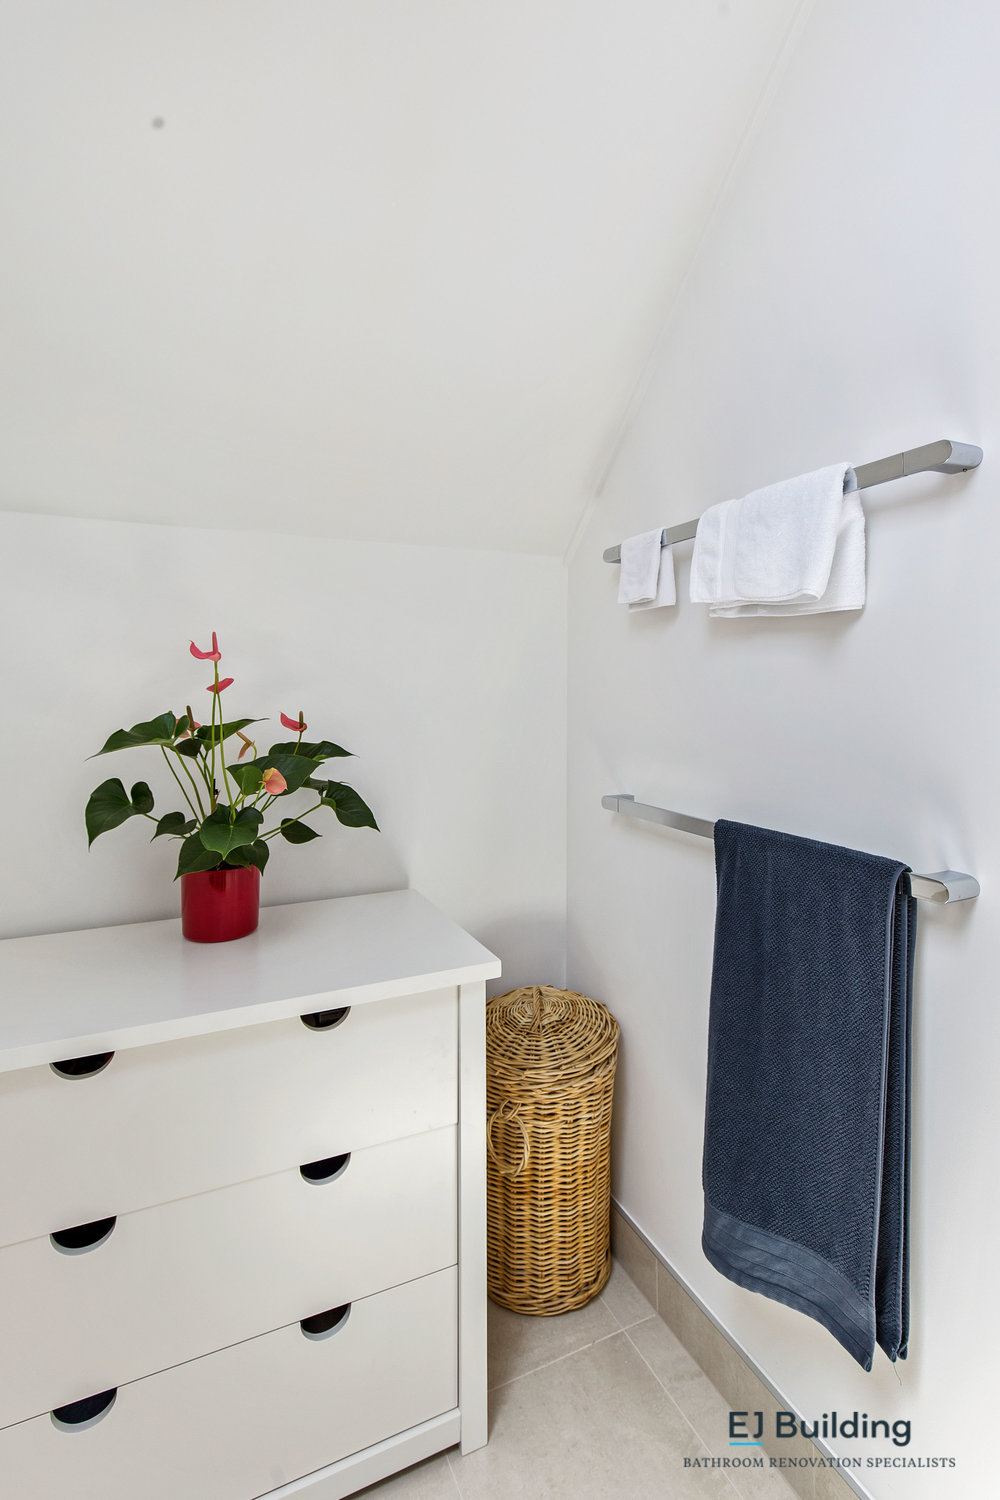 The number one bathroom renovation company in Auckland. specialising in mid to high end bathroom renovations.